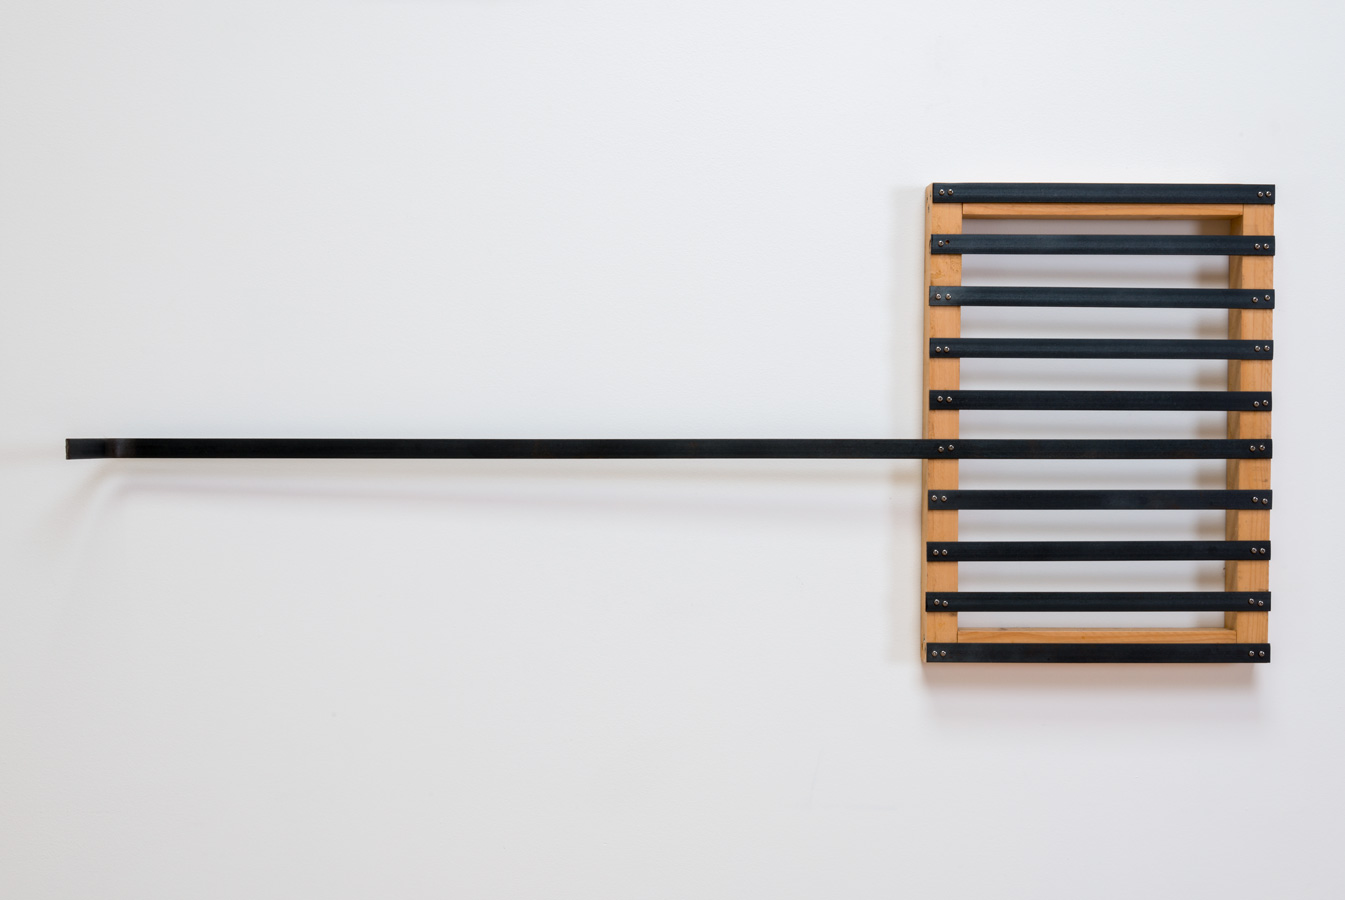 Untitled , 1999 無題 Wood, iron 17 3/4 x 43 3/4 x 1 3/4 inches 45 x 111 x 4.5 centimeters